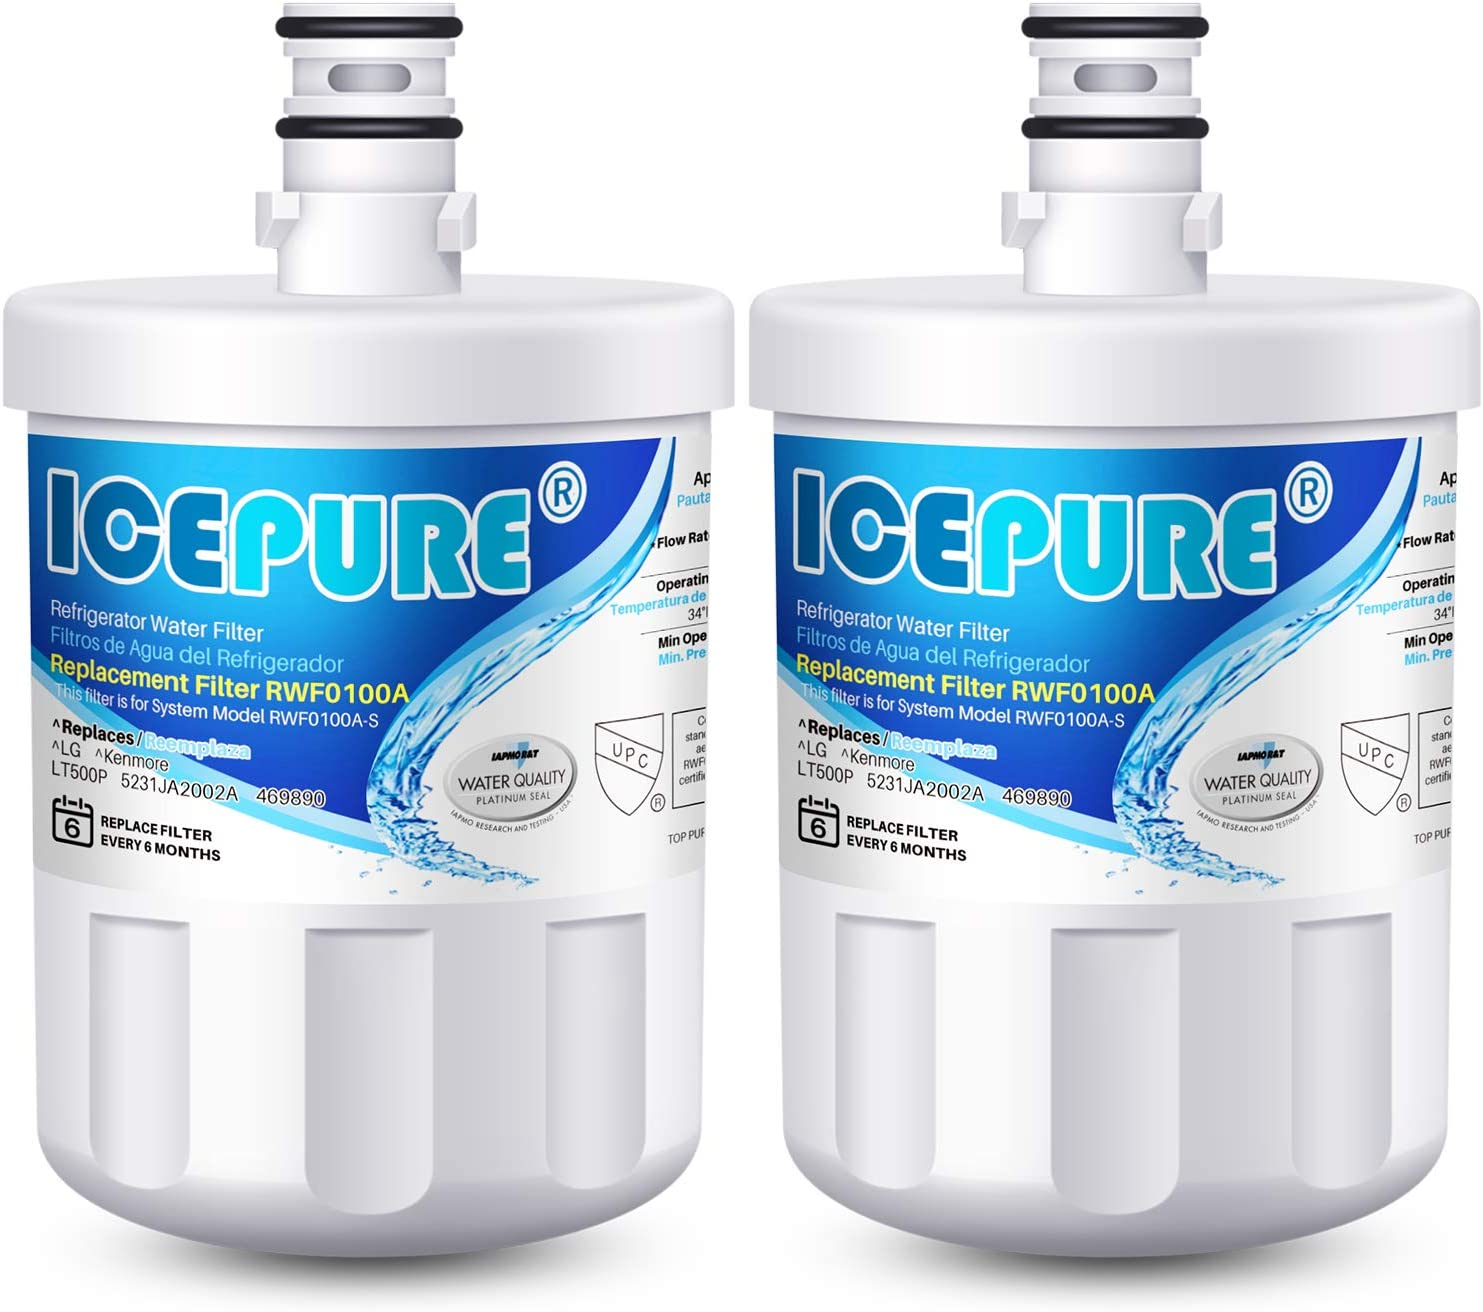 ICEPURE 5231JA2002A Refrigerator Water LG 40% OFF Cheap Sale Compatible with Special Campaign Filter